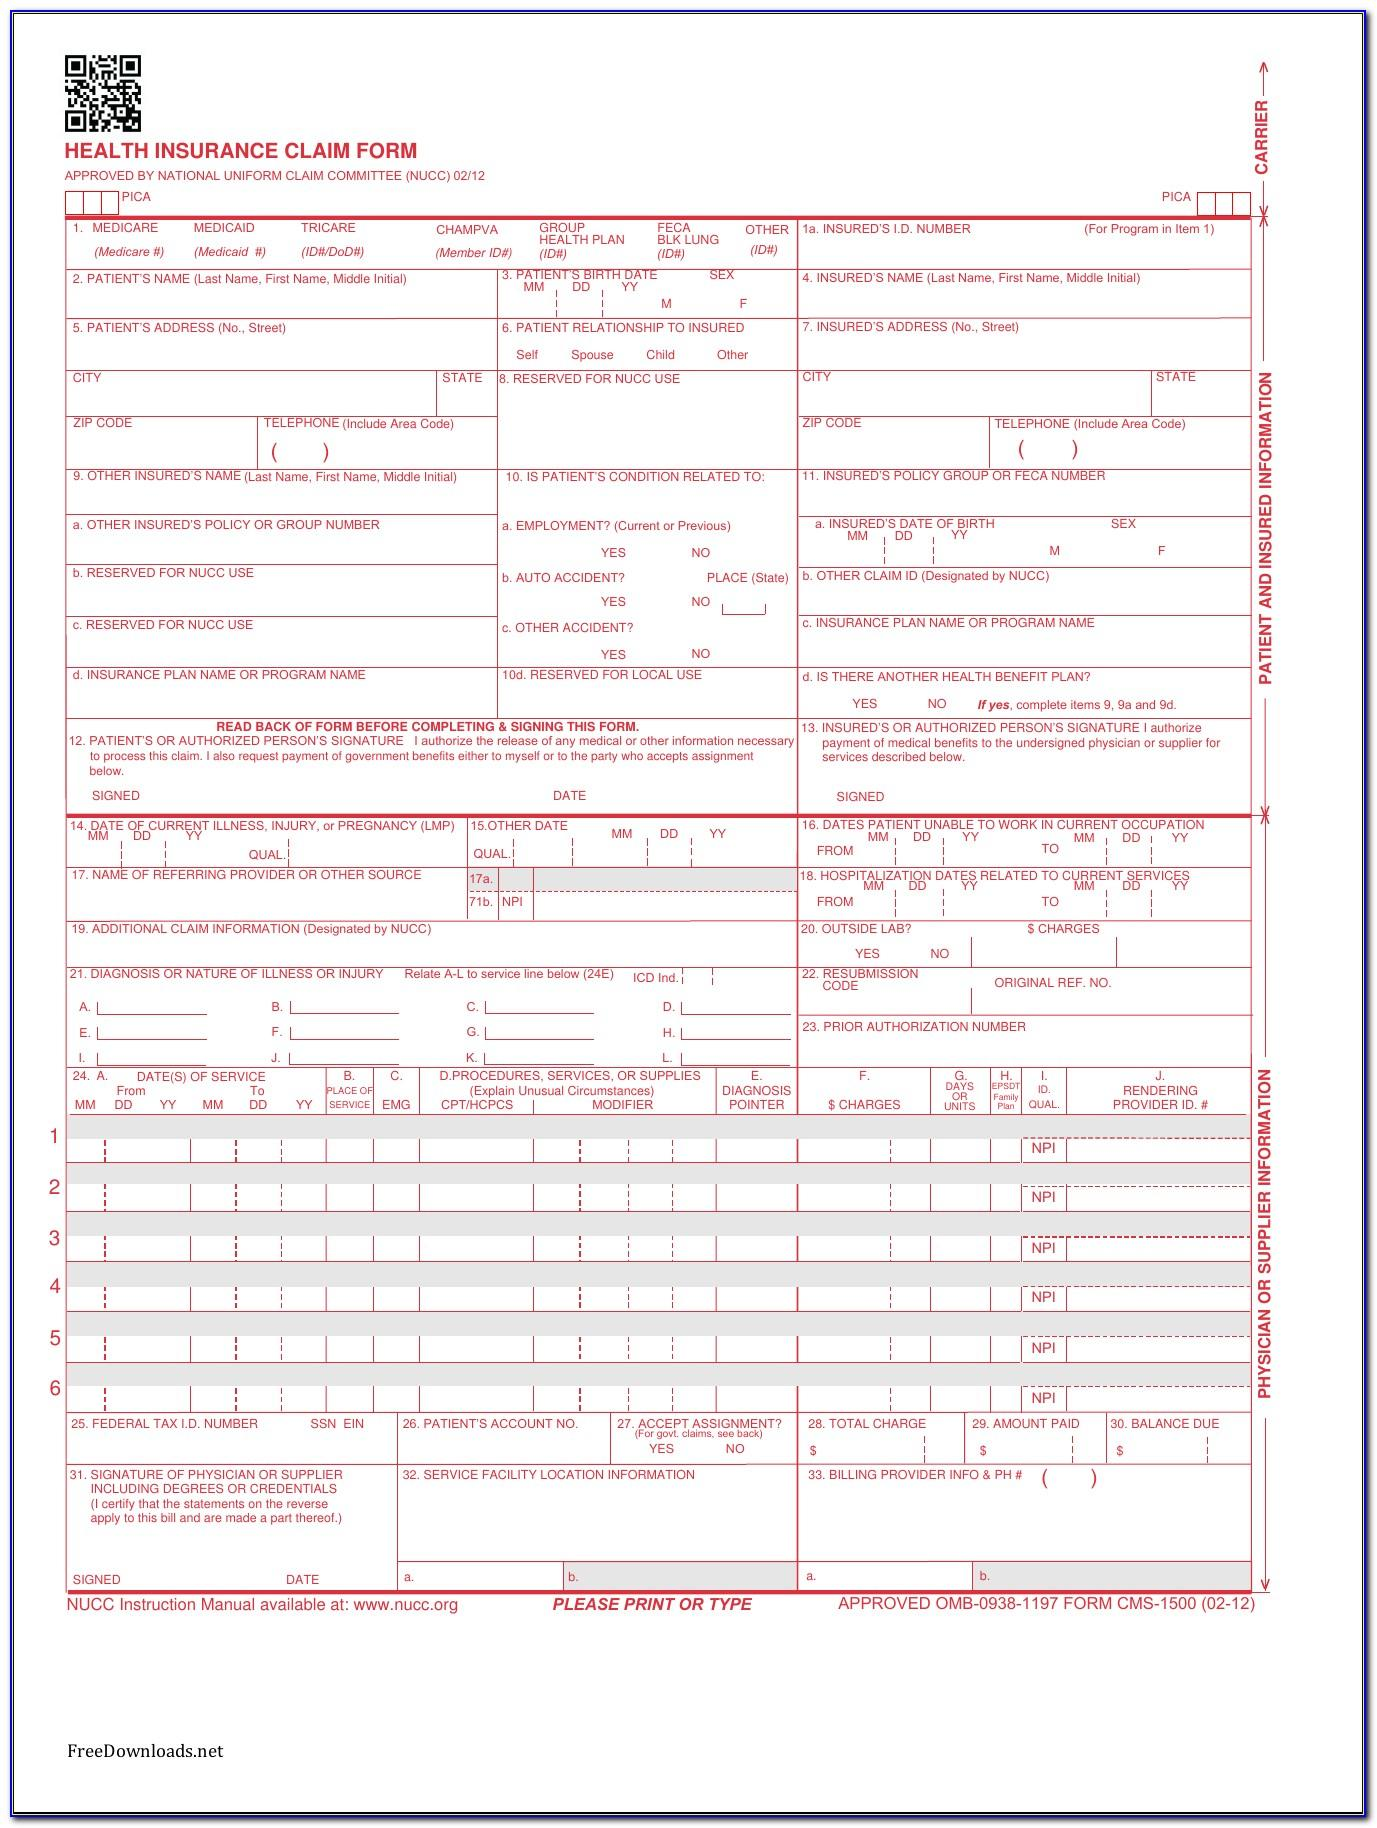 Cms 1500 Claim Form Free Download